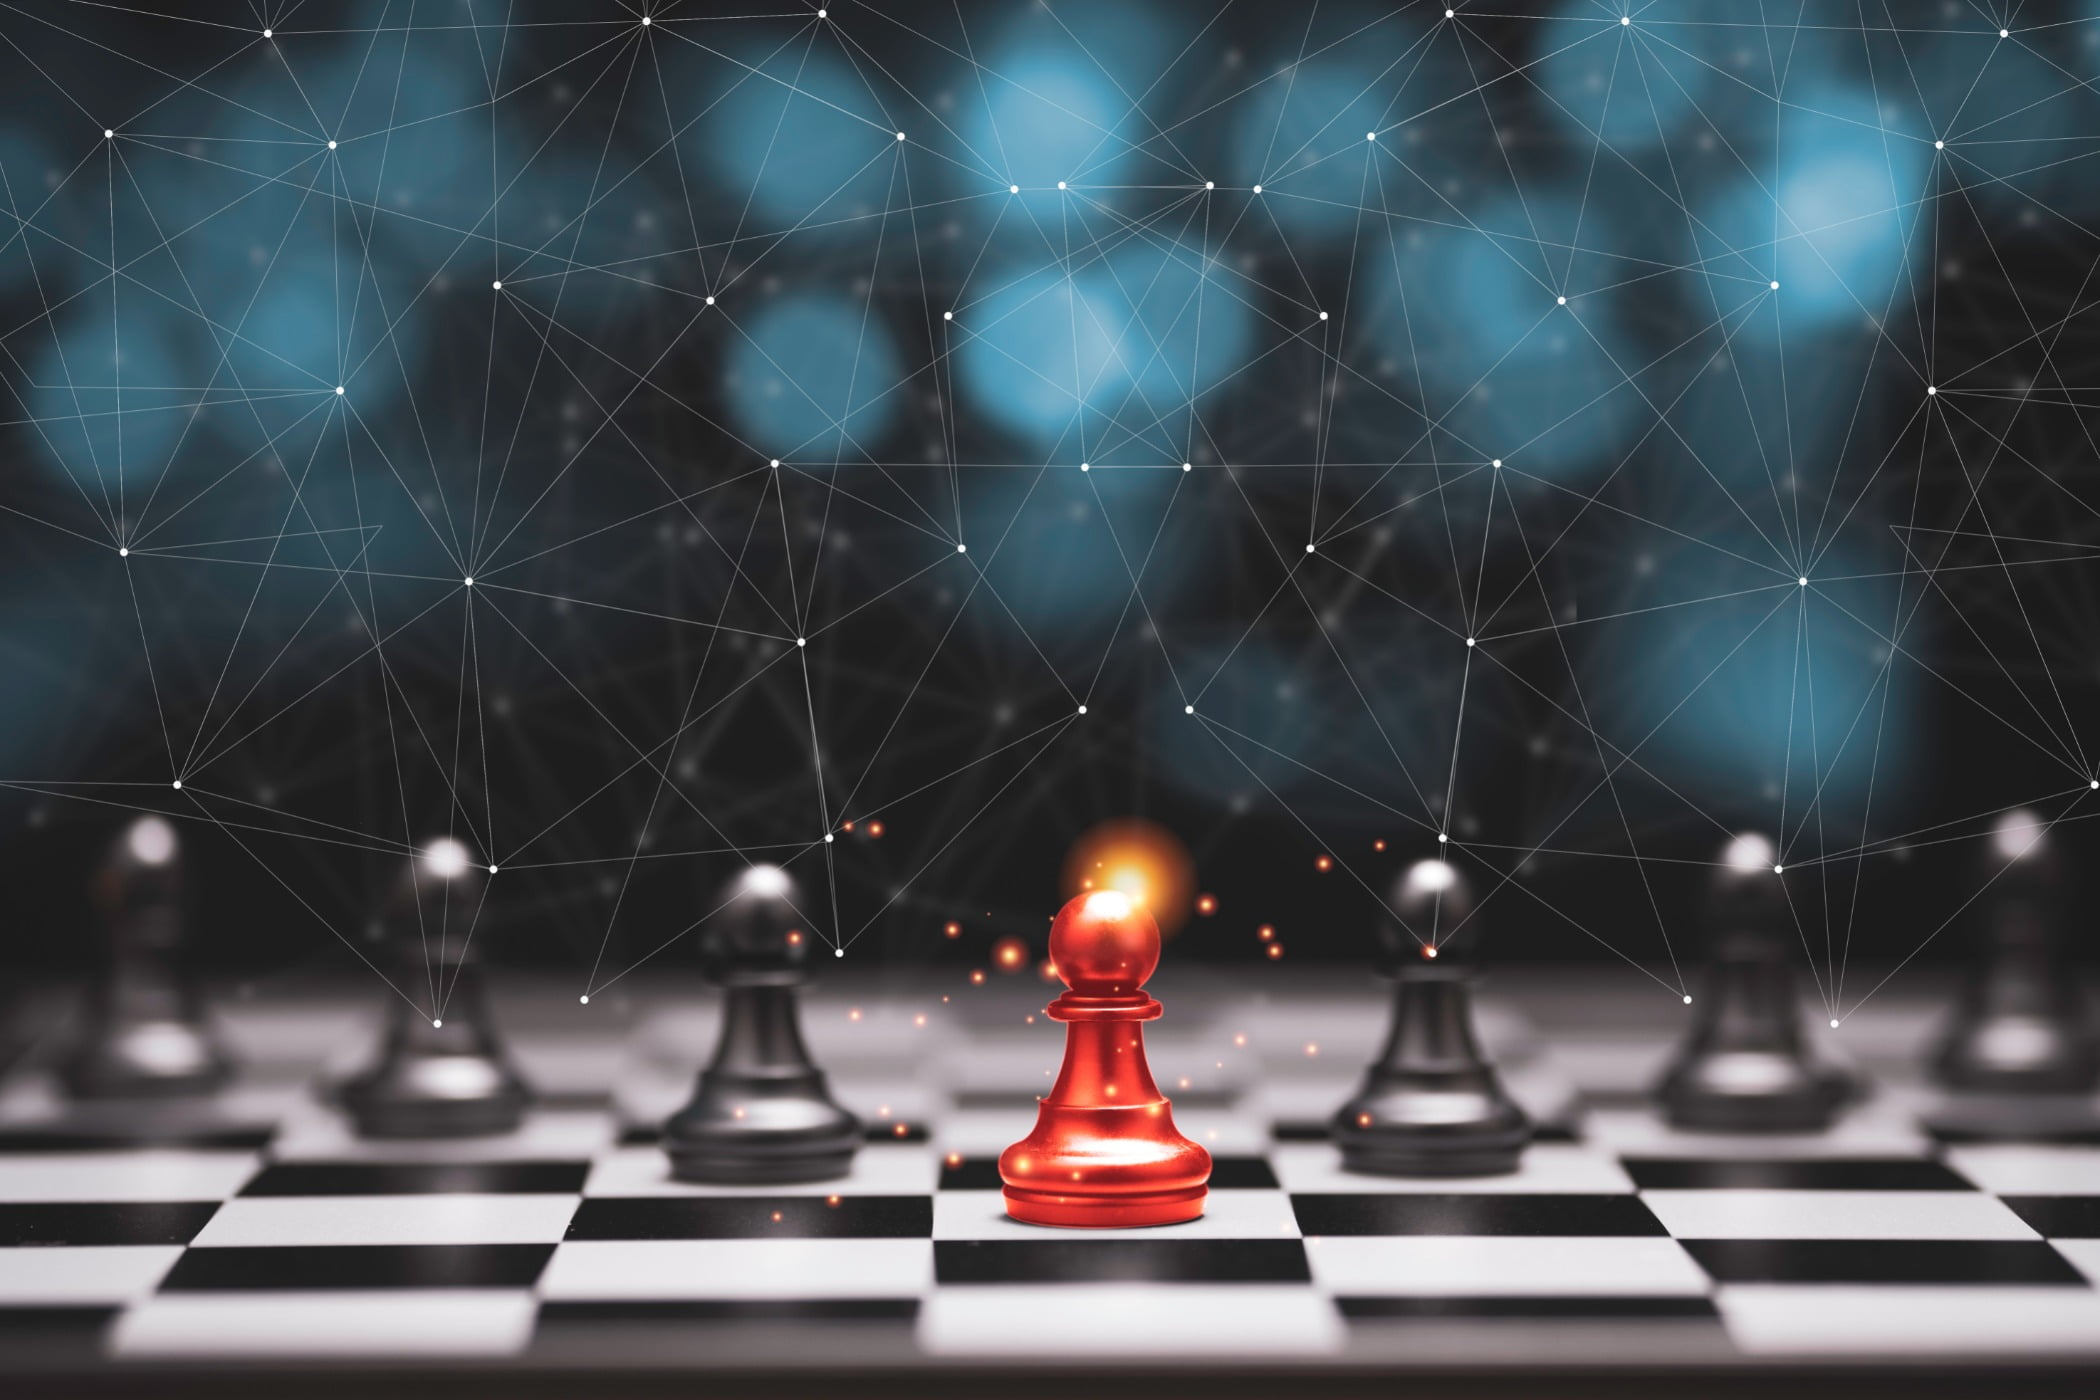 Red pawn chess stepped out of line to leading black chess and show different thinking ideas. Business technology change and disruption for new normal concept